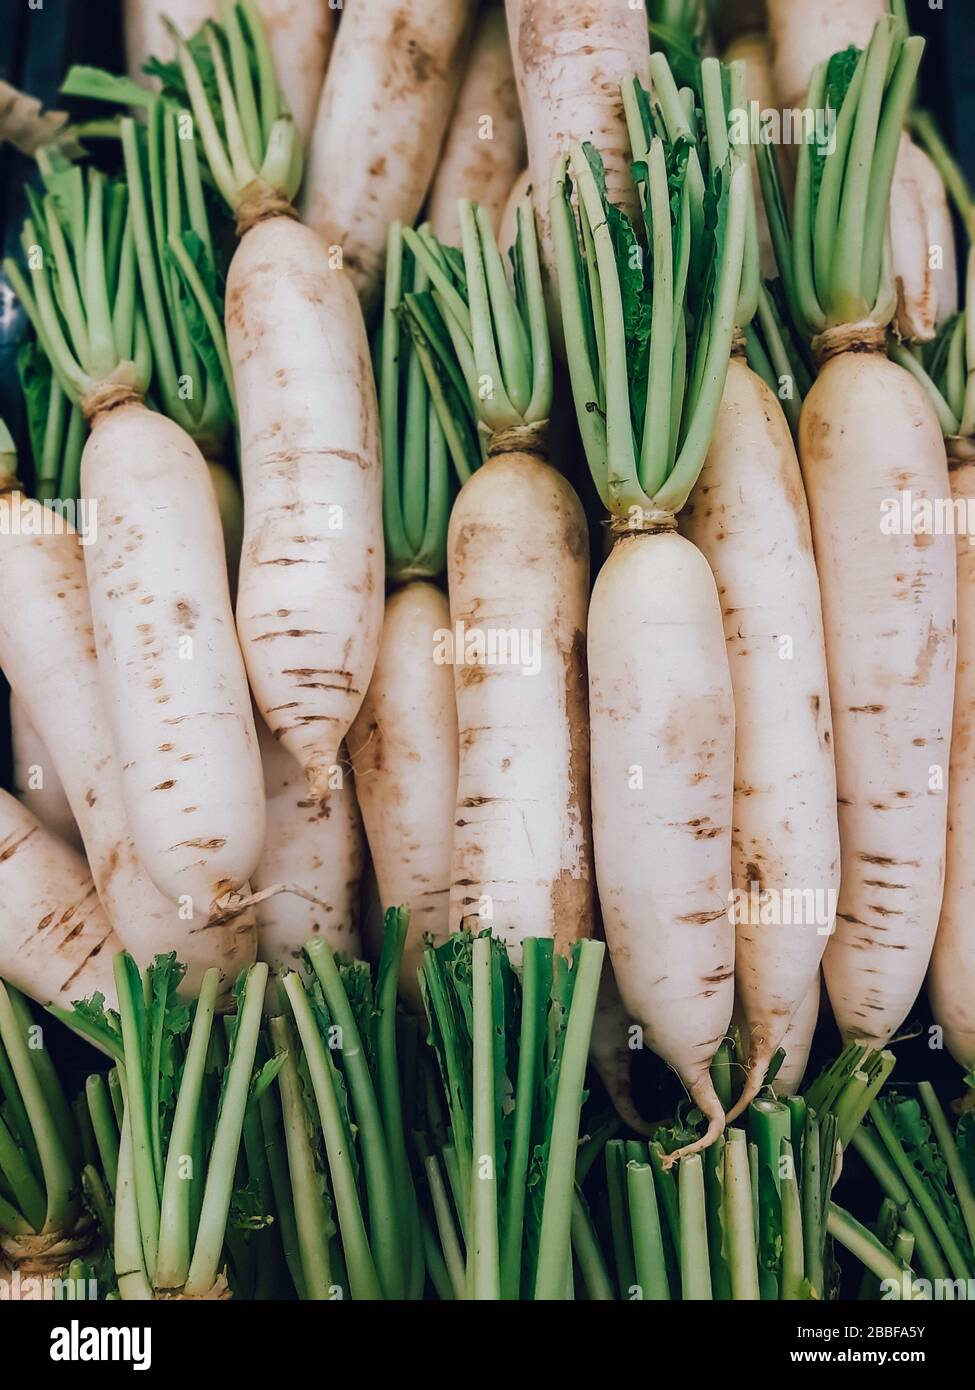 Organic local daikon radish vegetables or sell in the market, vegetable Stock Photo